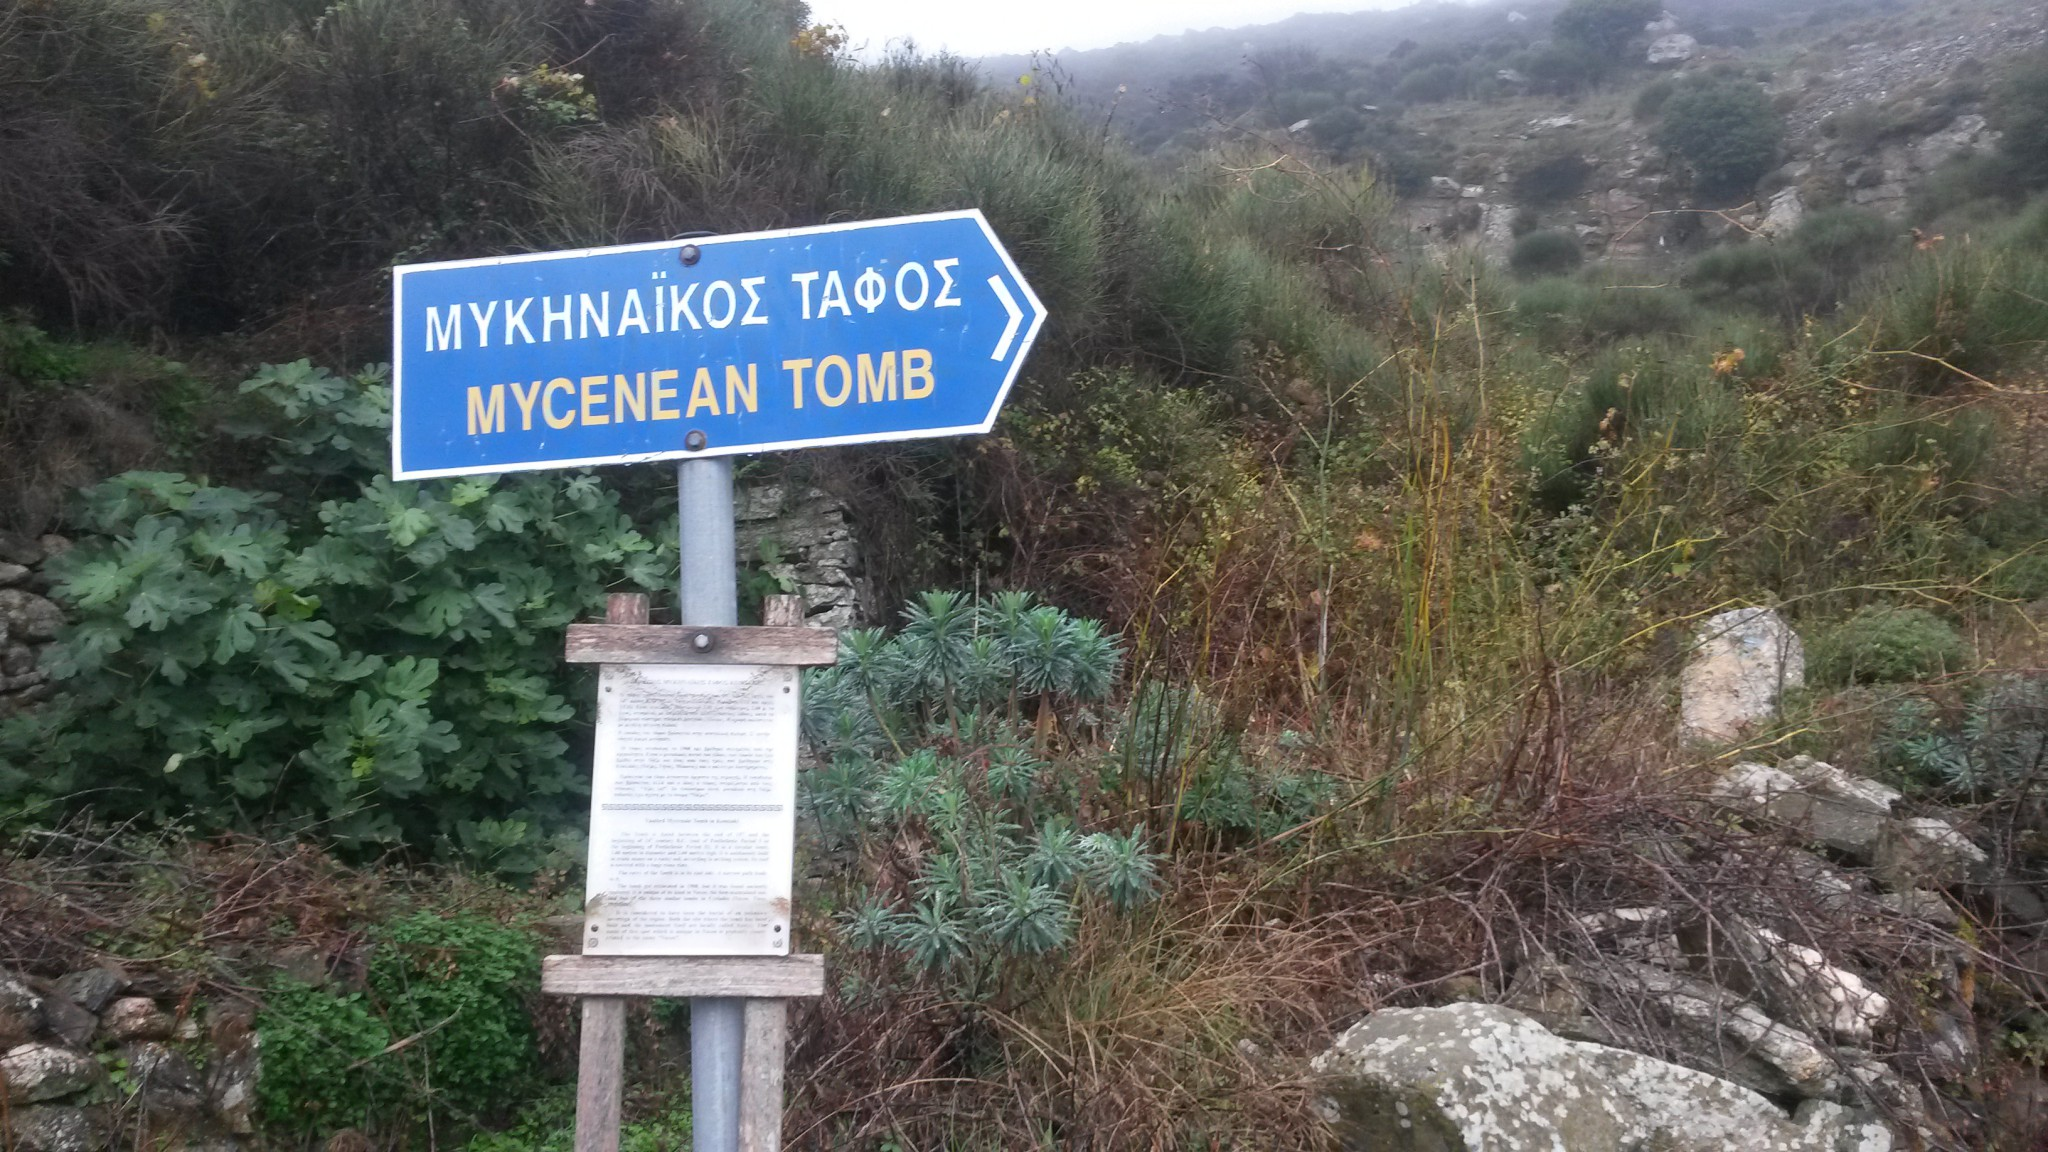 To the Mycenaean Tomb